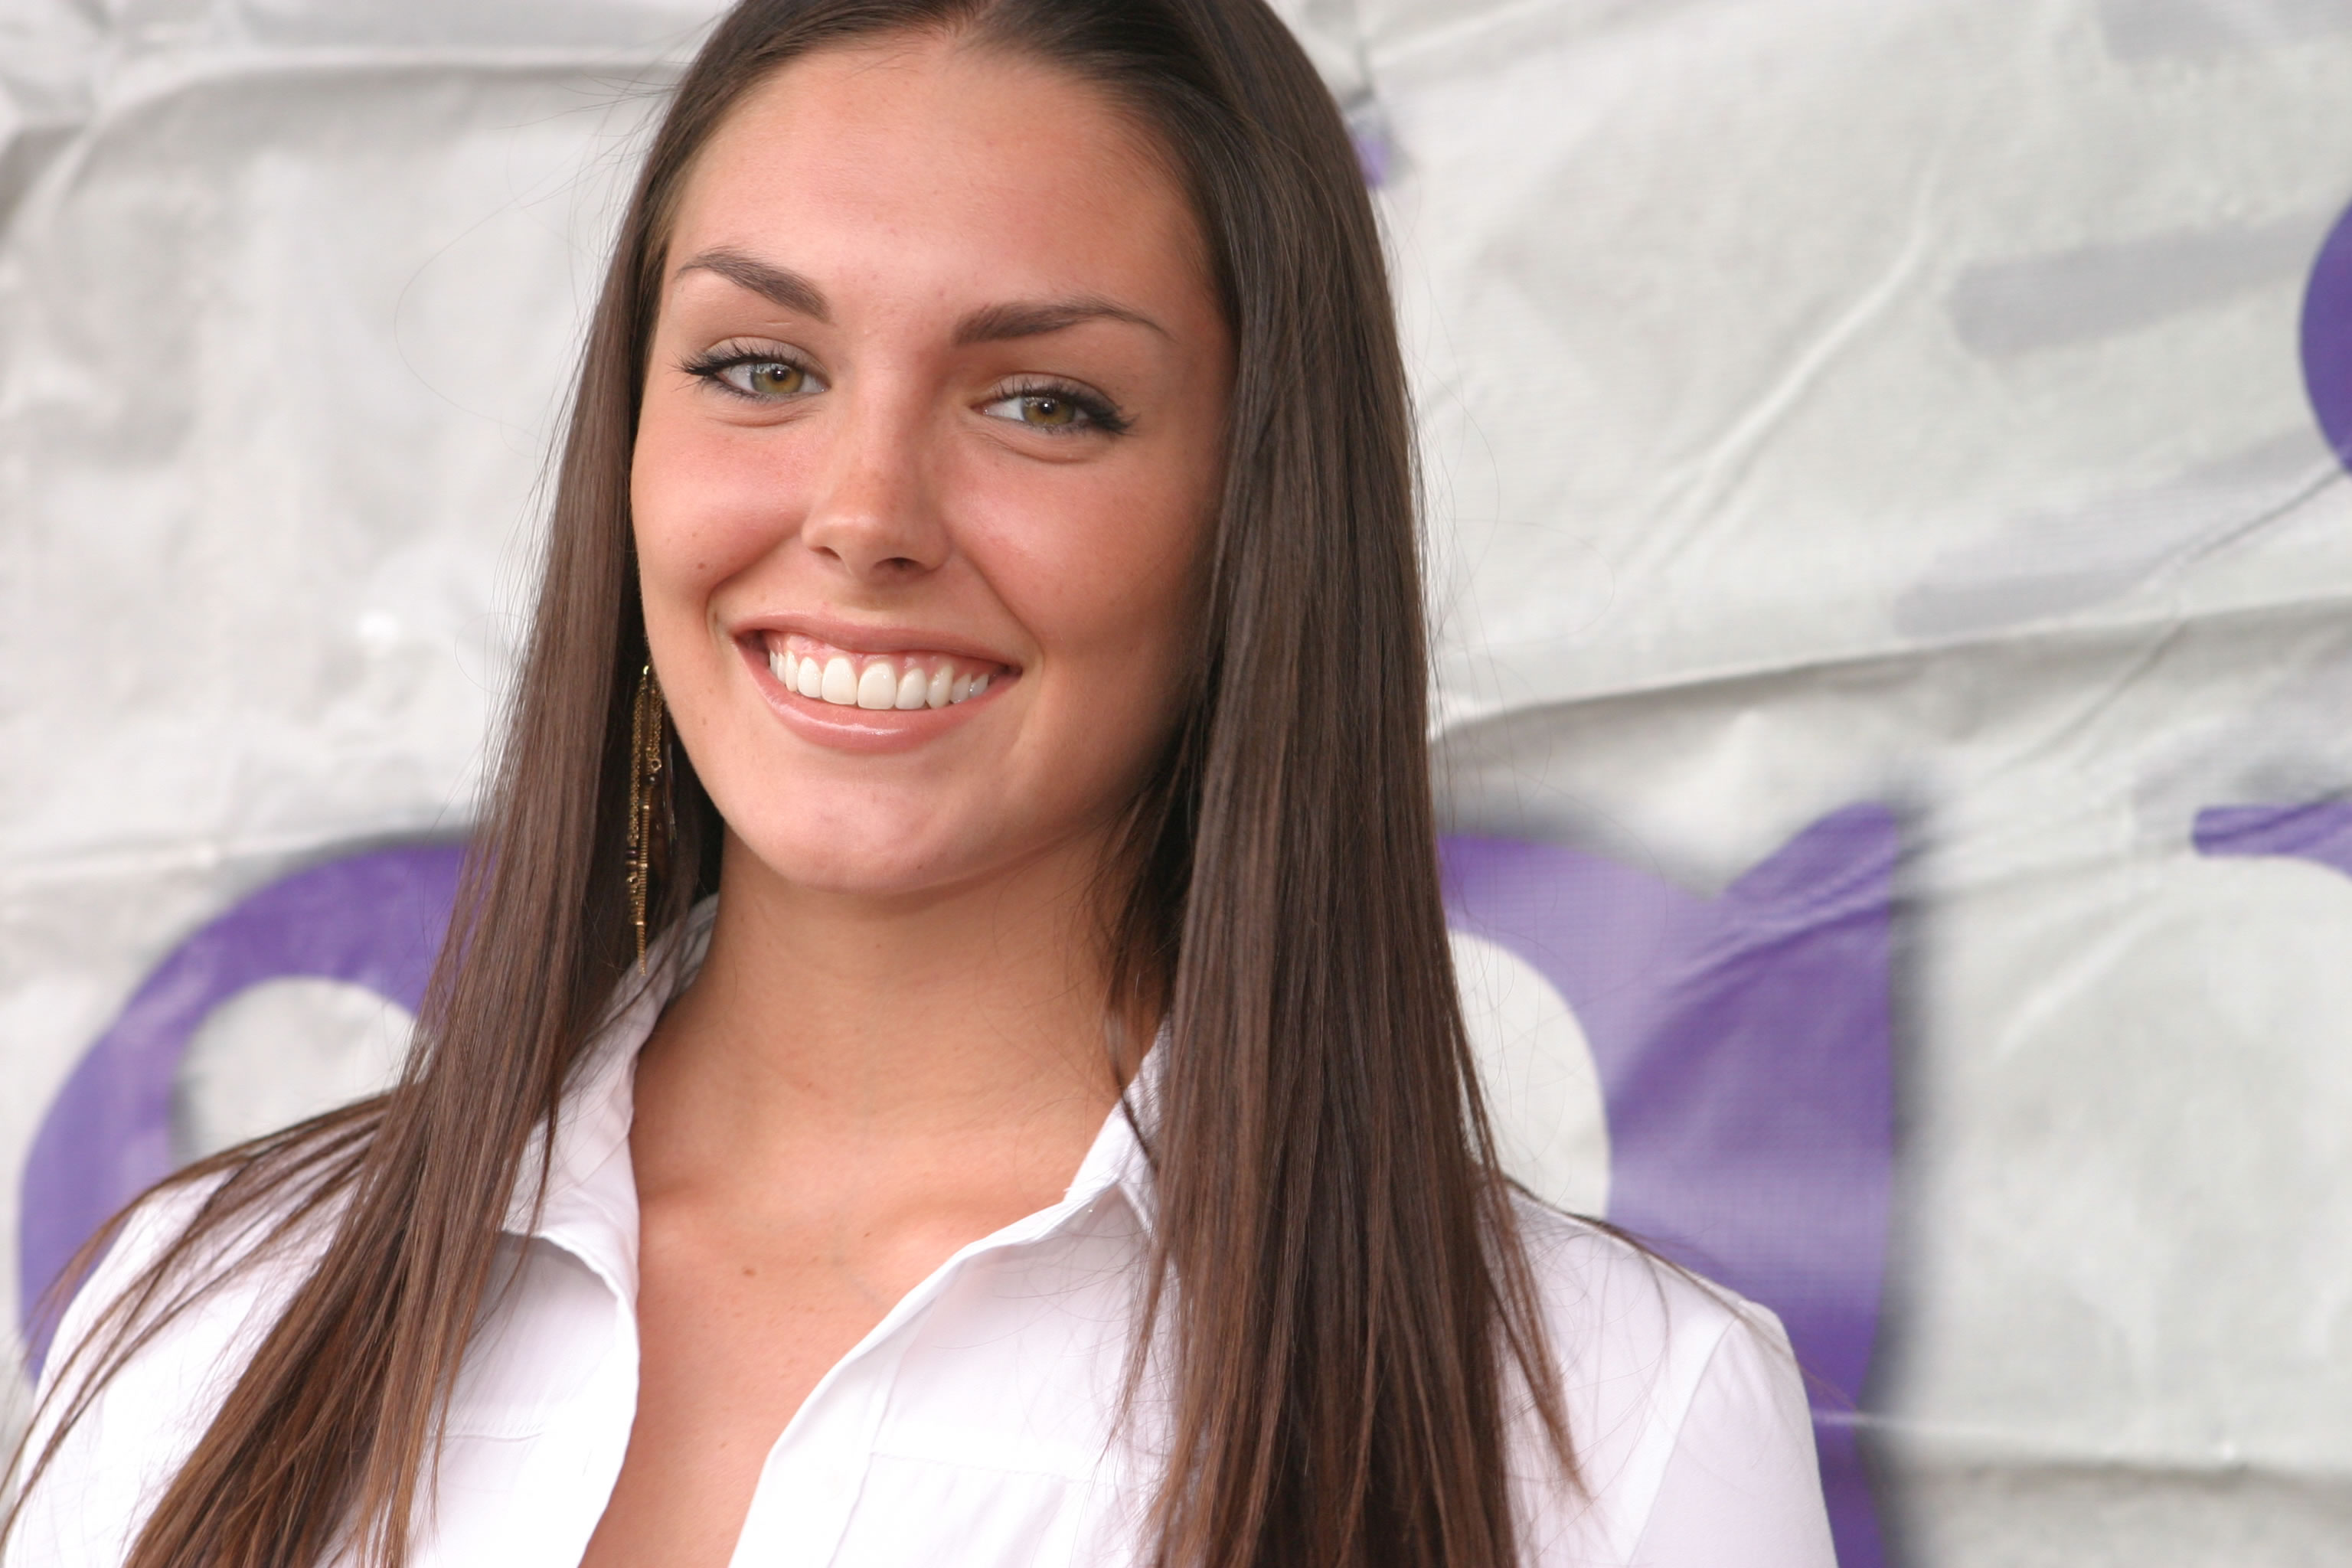 3072x2048 - Taylor Cole Wallpapers 14